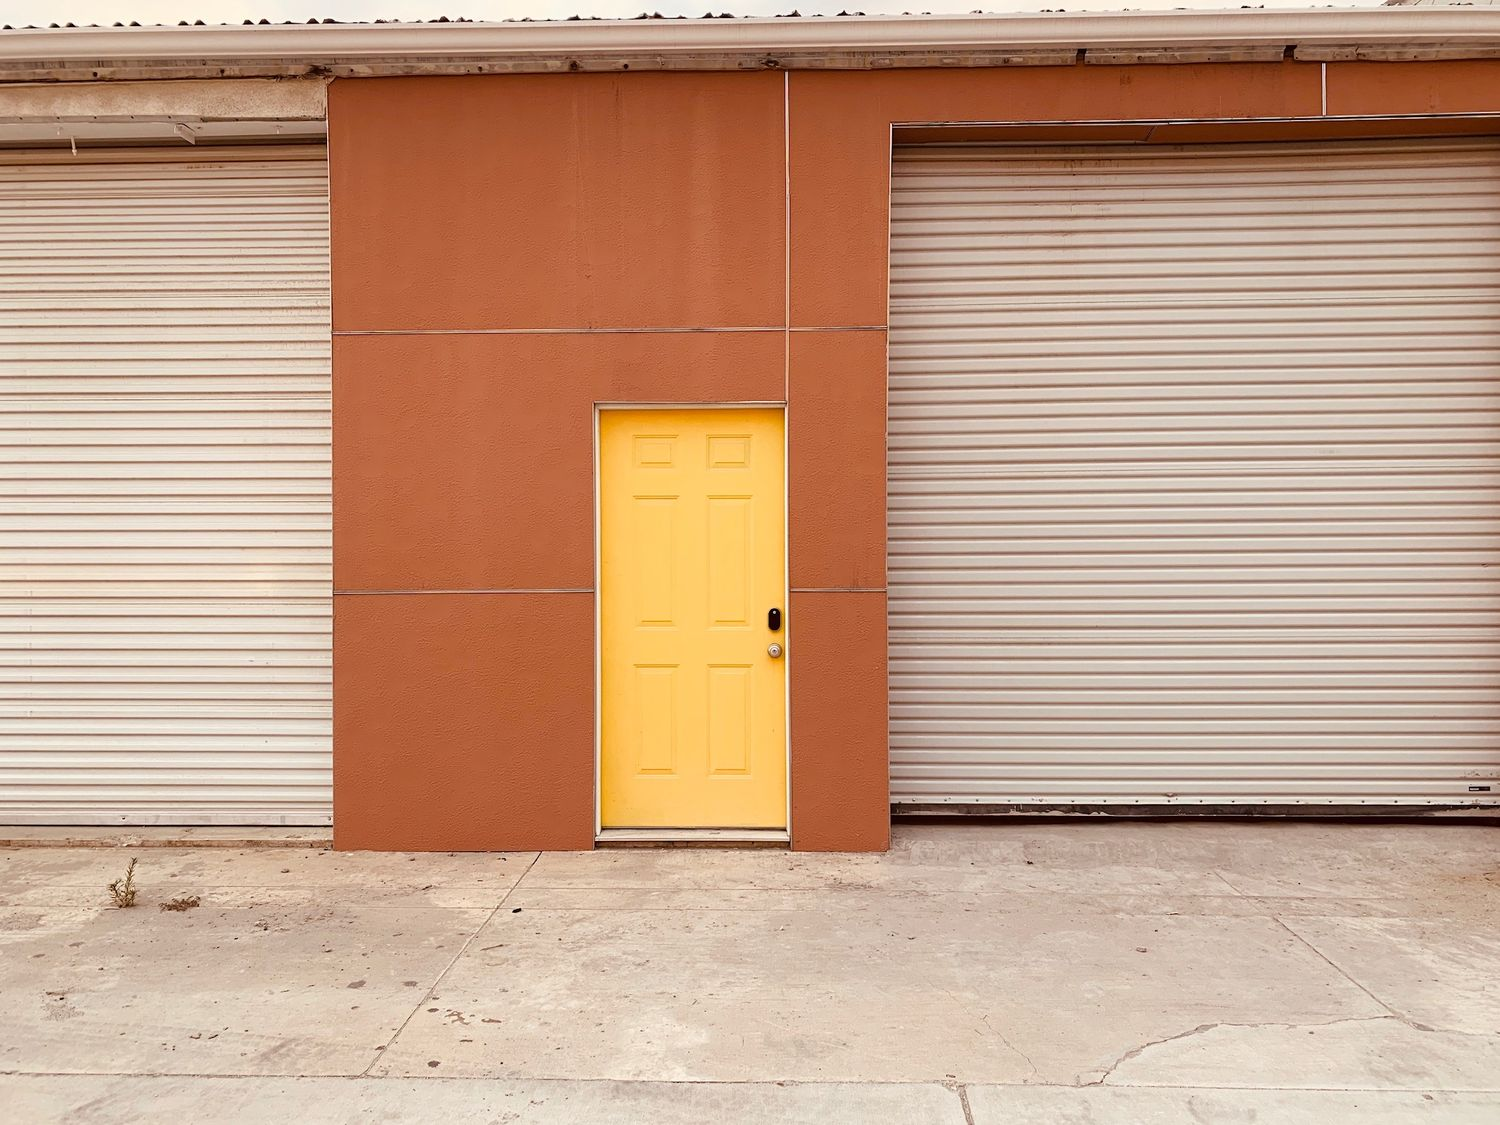 simply staging  8500 sqft yellow warehouse door